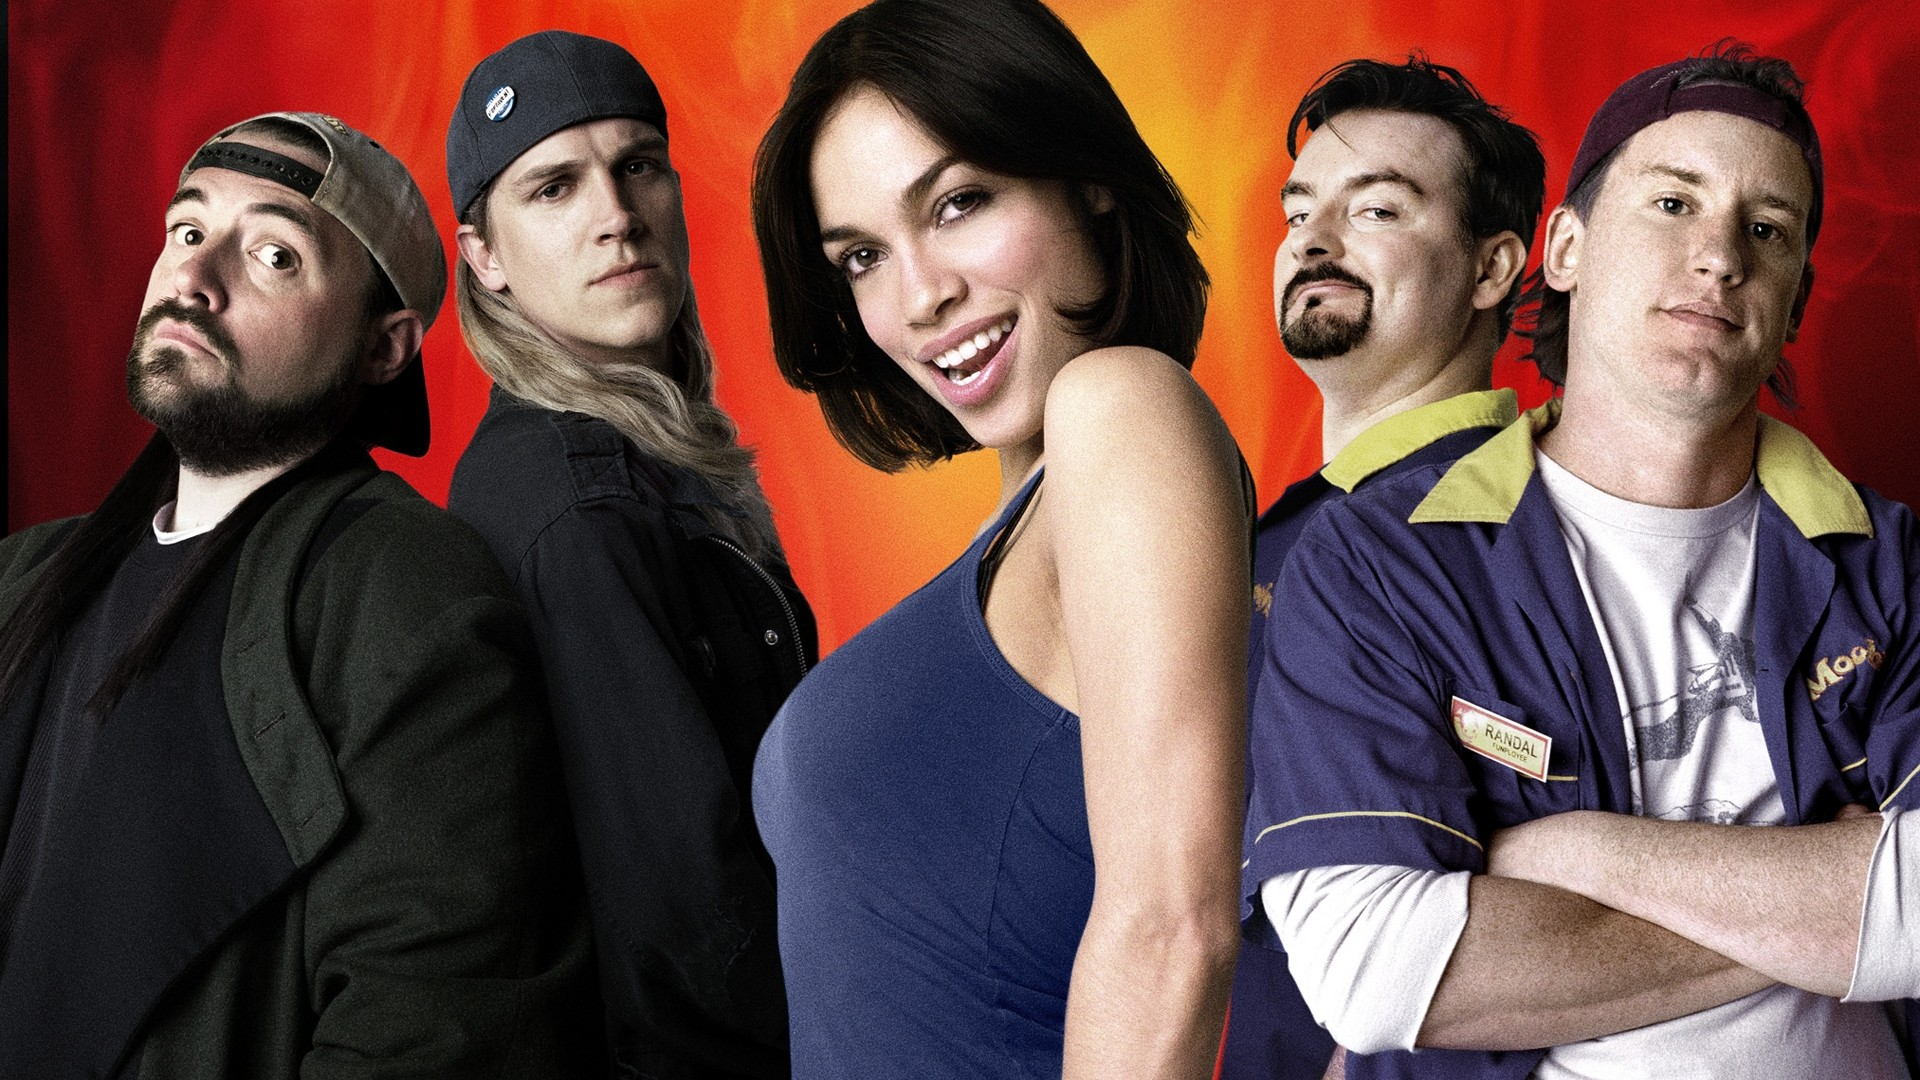 Clerks-Rosario-Dawson-New-Hd-Wallpaper-